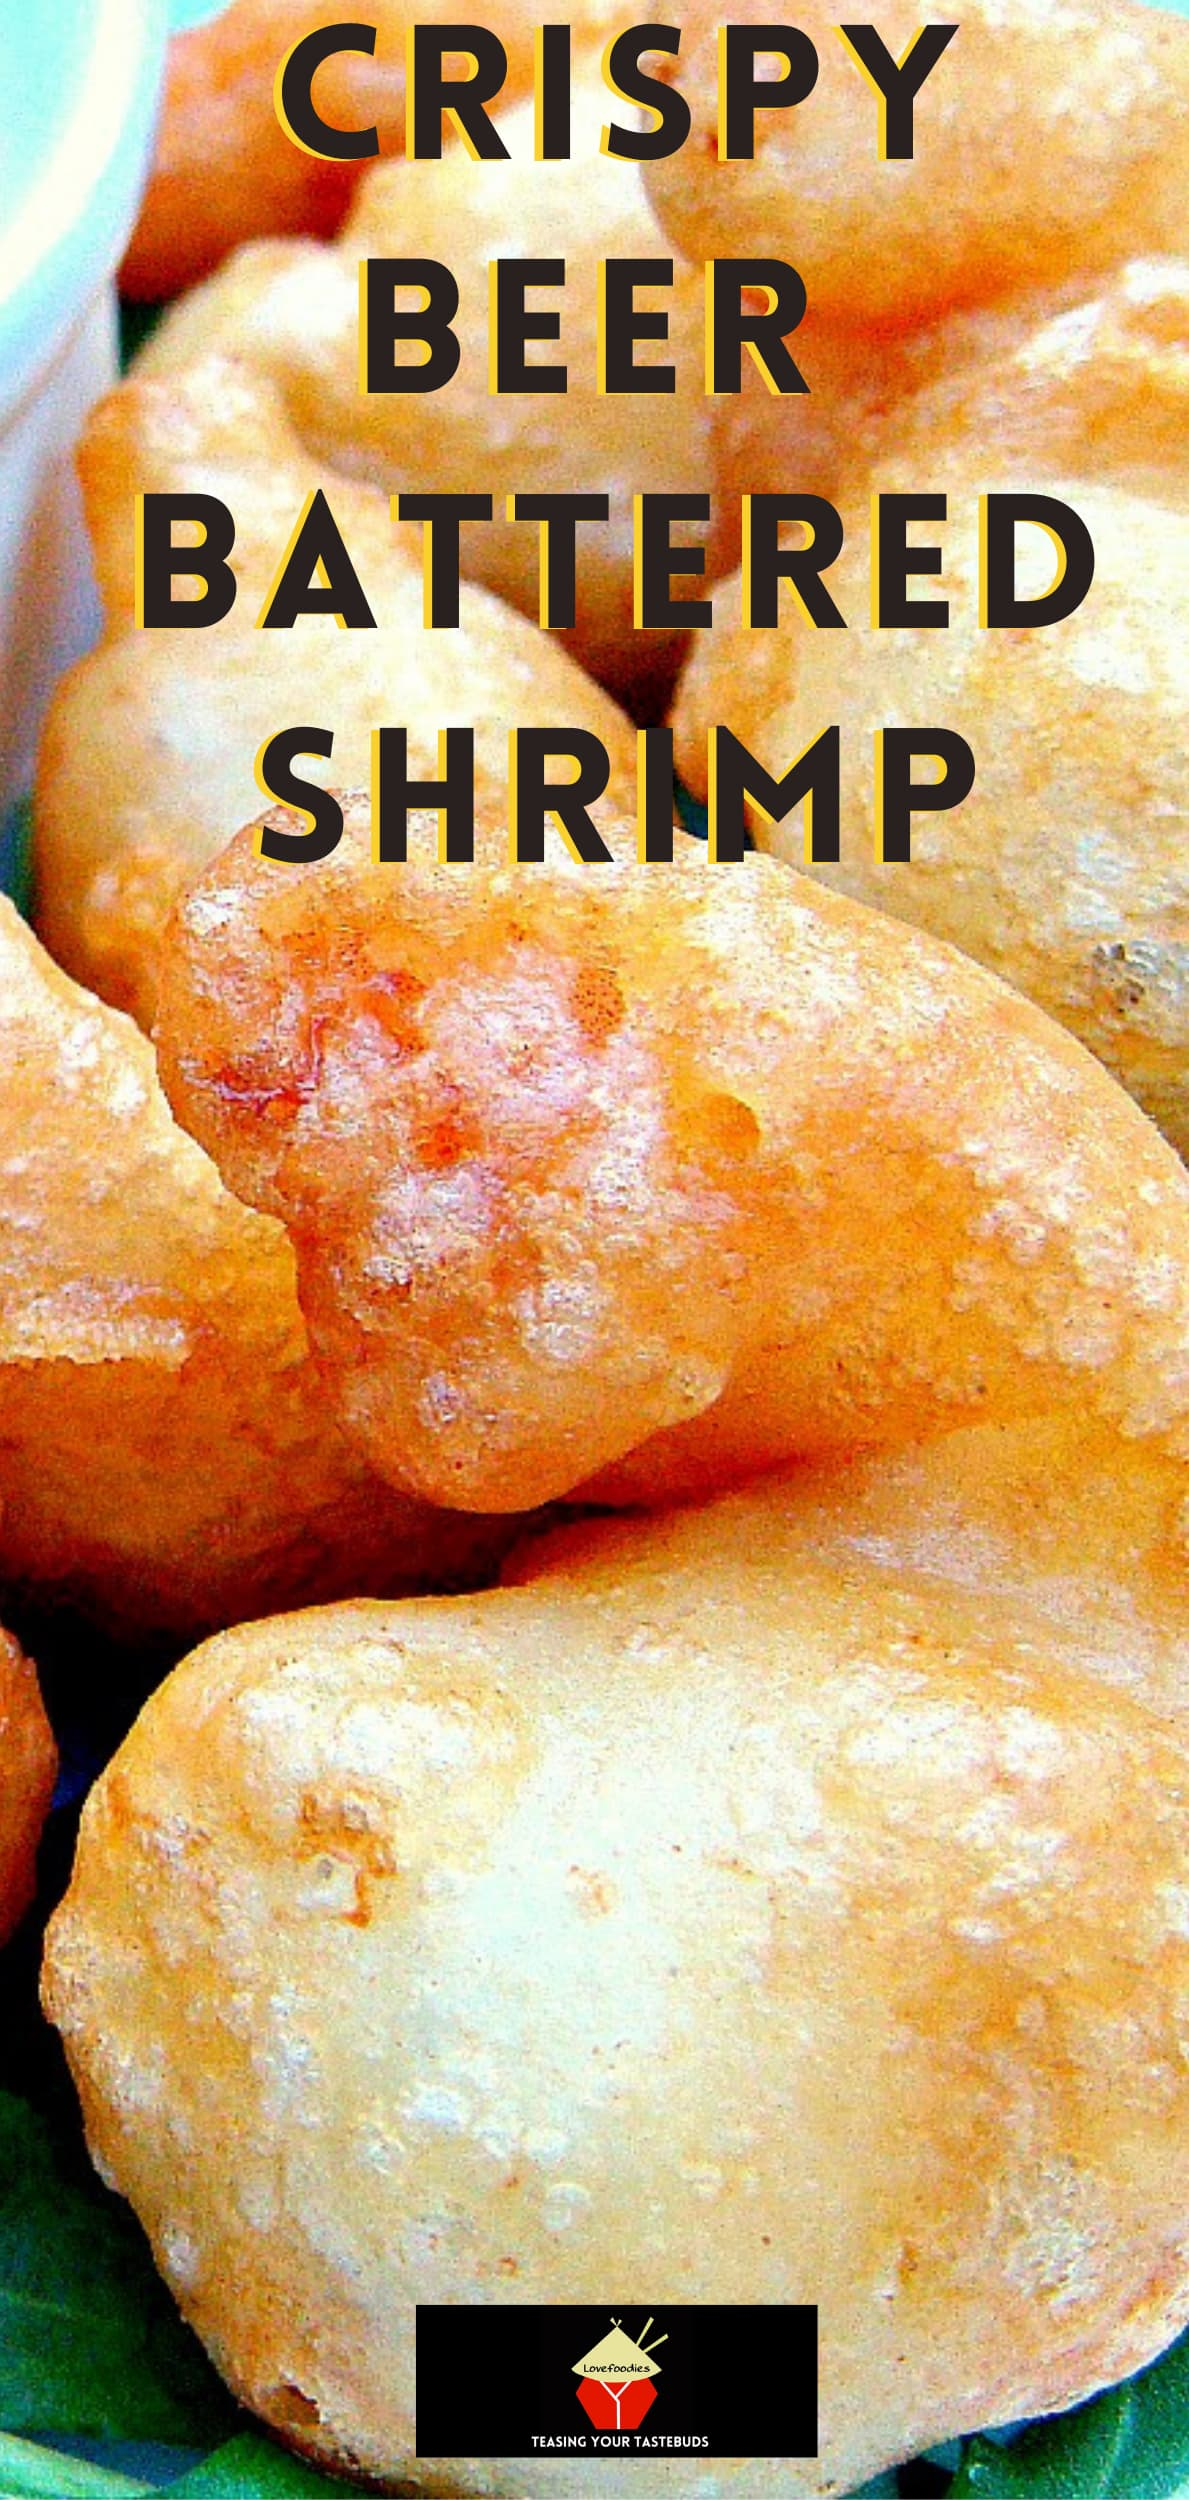 Crispy Beer Battered Shrimp. Light and crispy batter around delicious juicy shrimp, add your favorite dip and these are a perfect starter or party food.